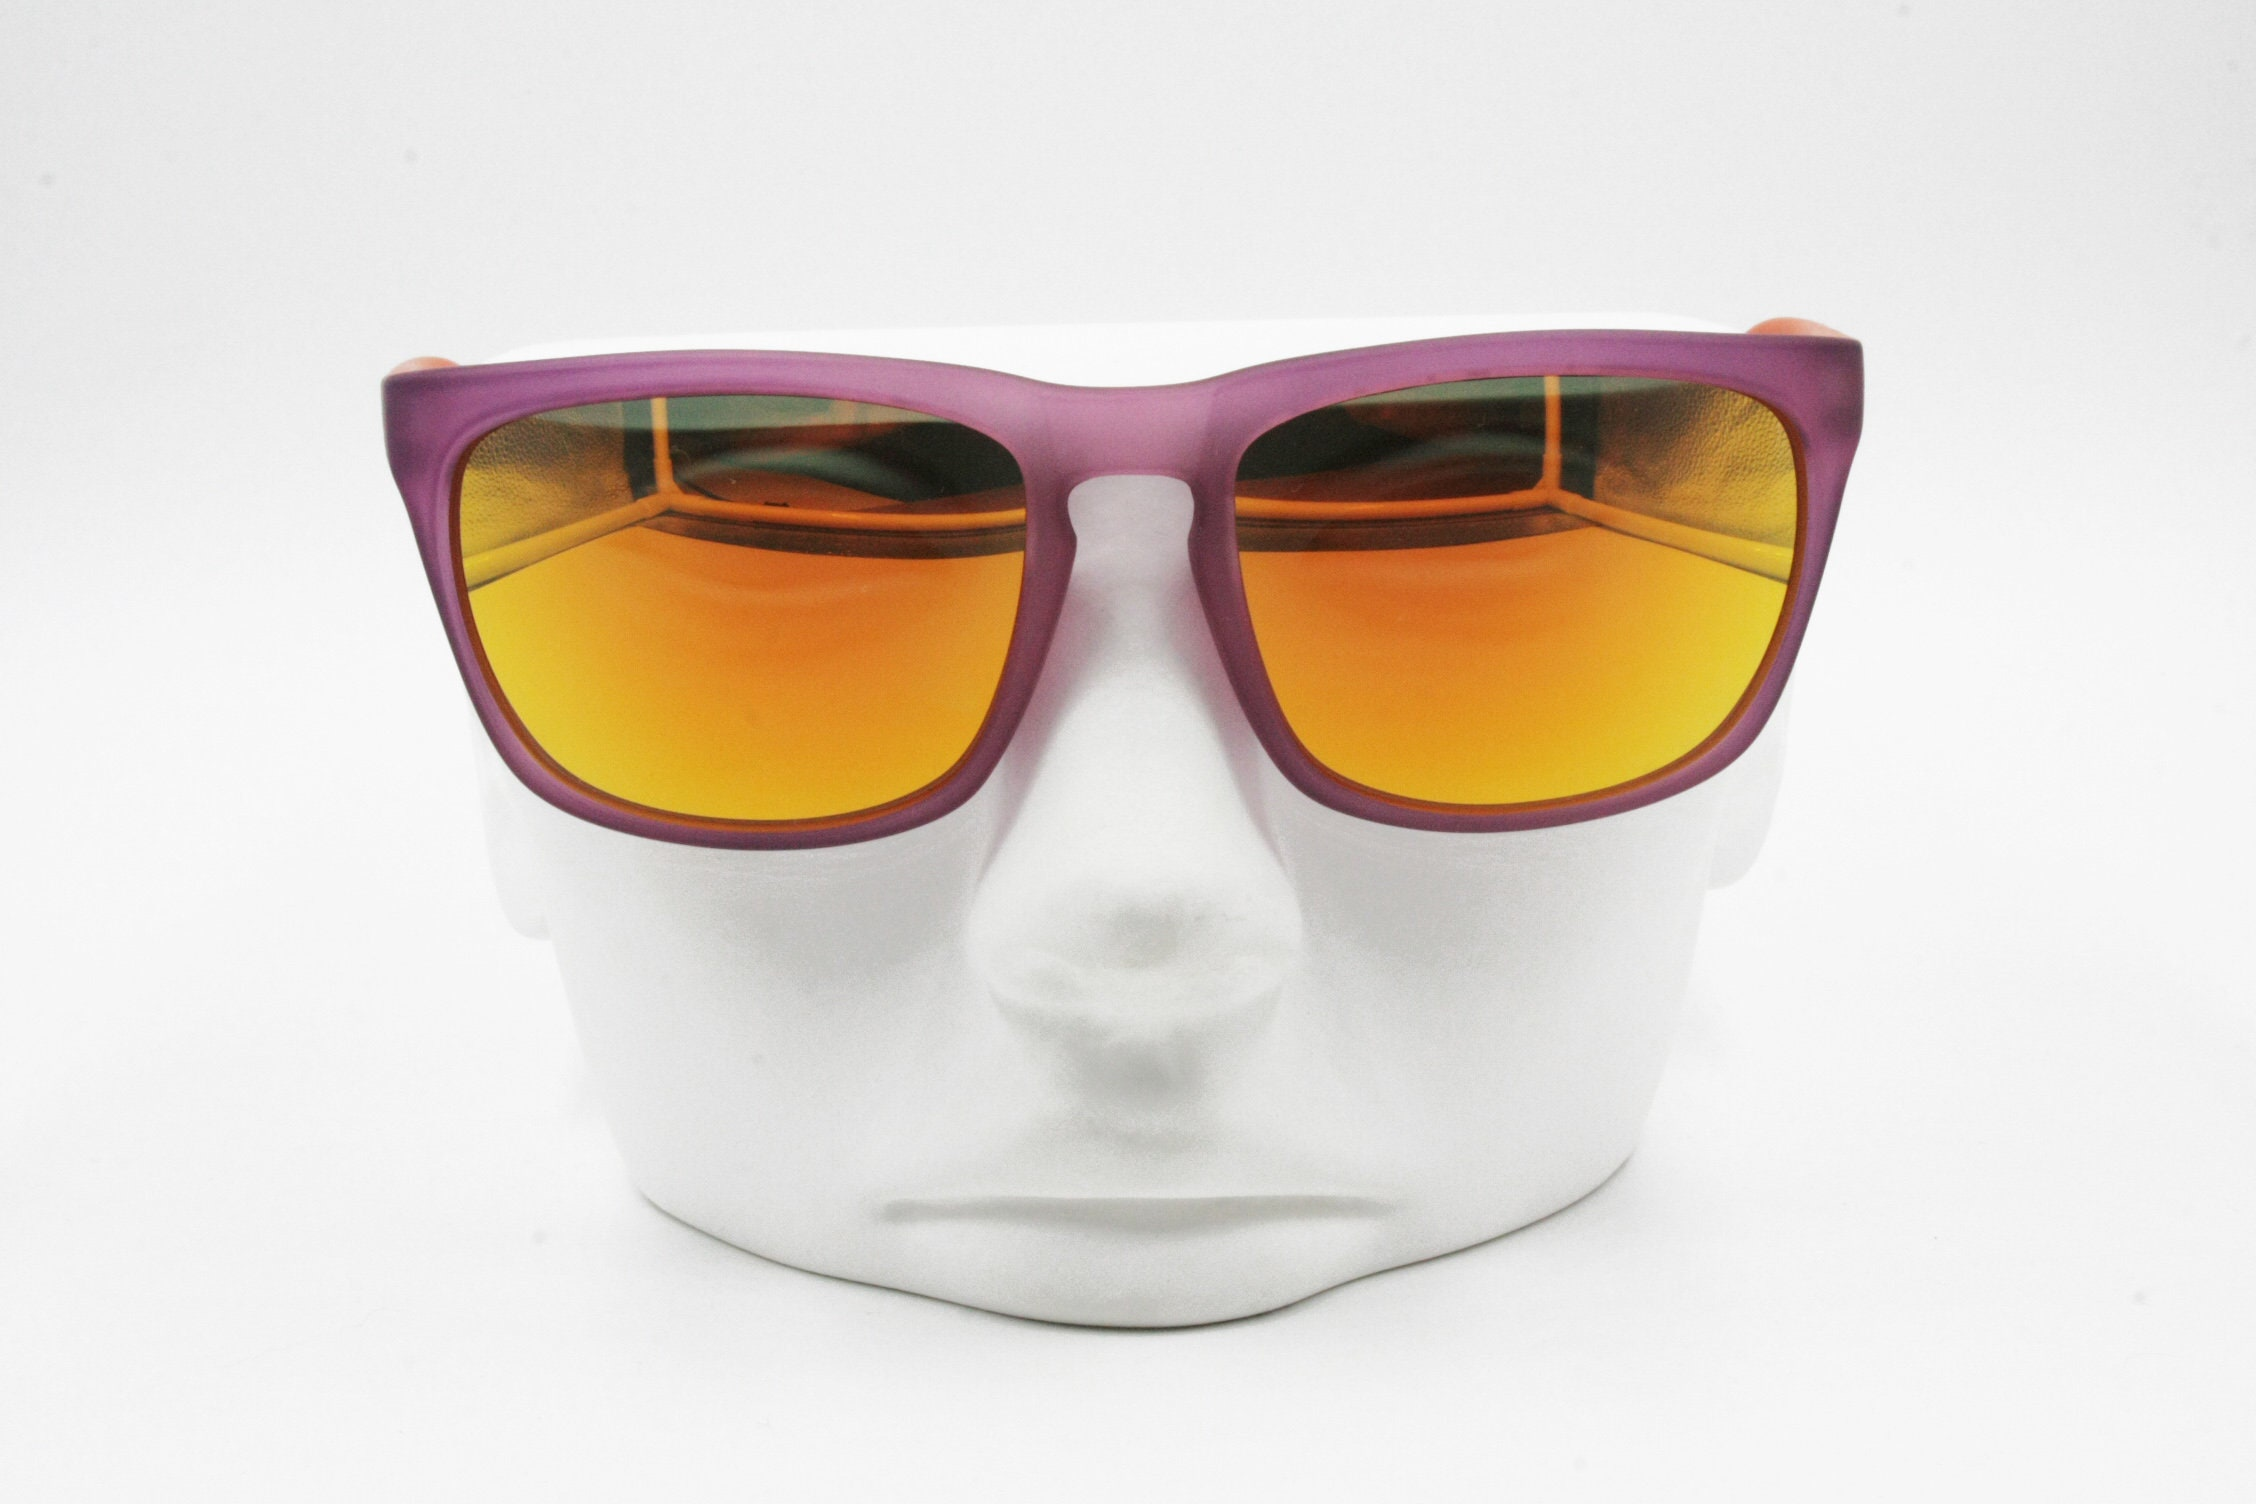 b8a18e7b57af United Colors of Benetton Sunglasses sporty sport with